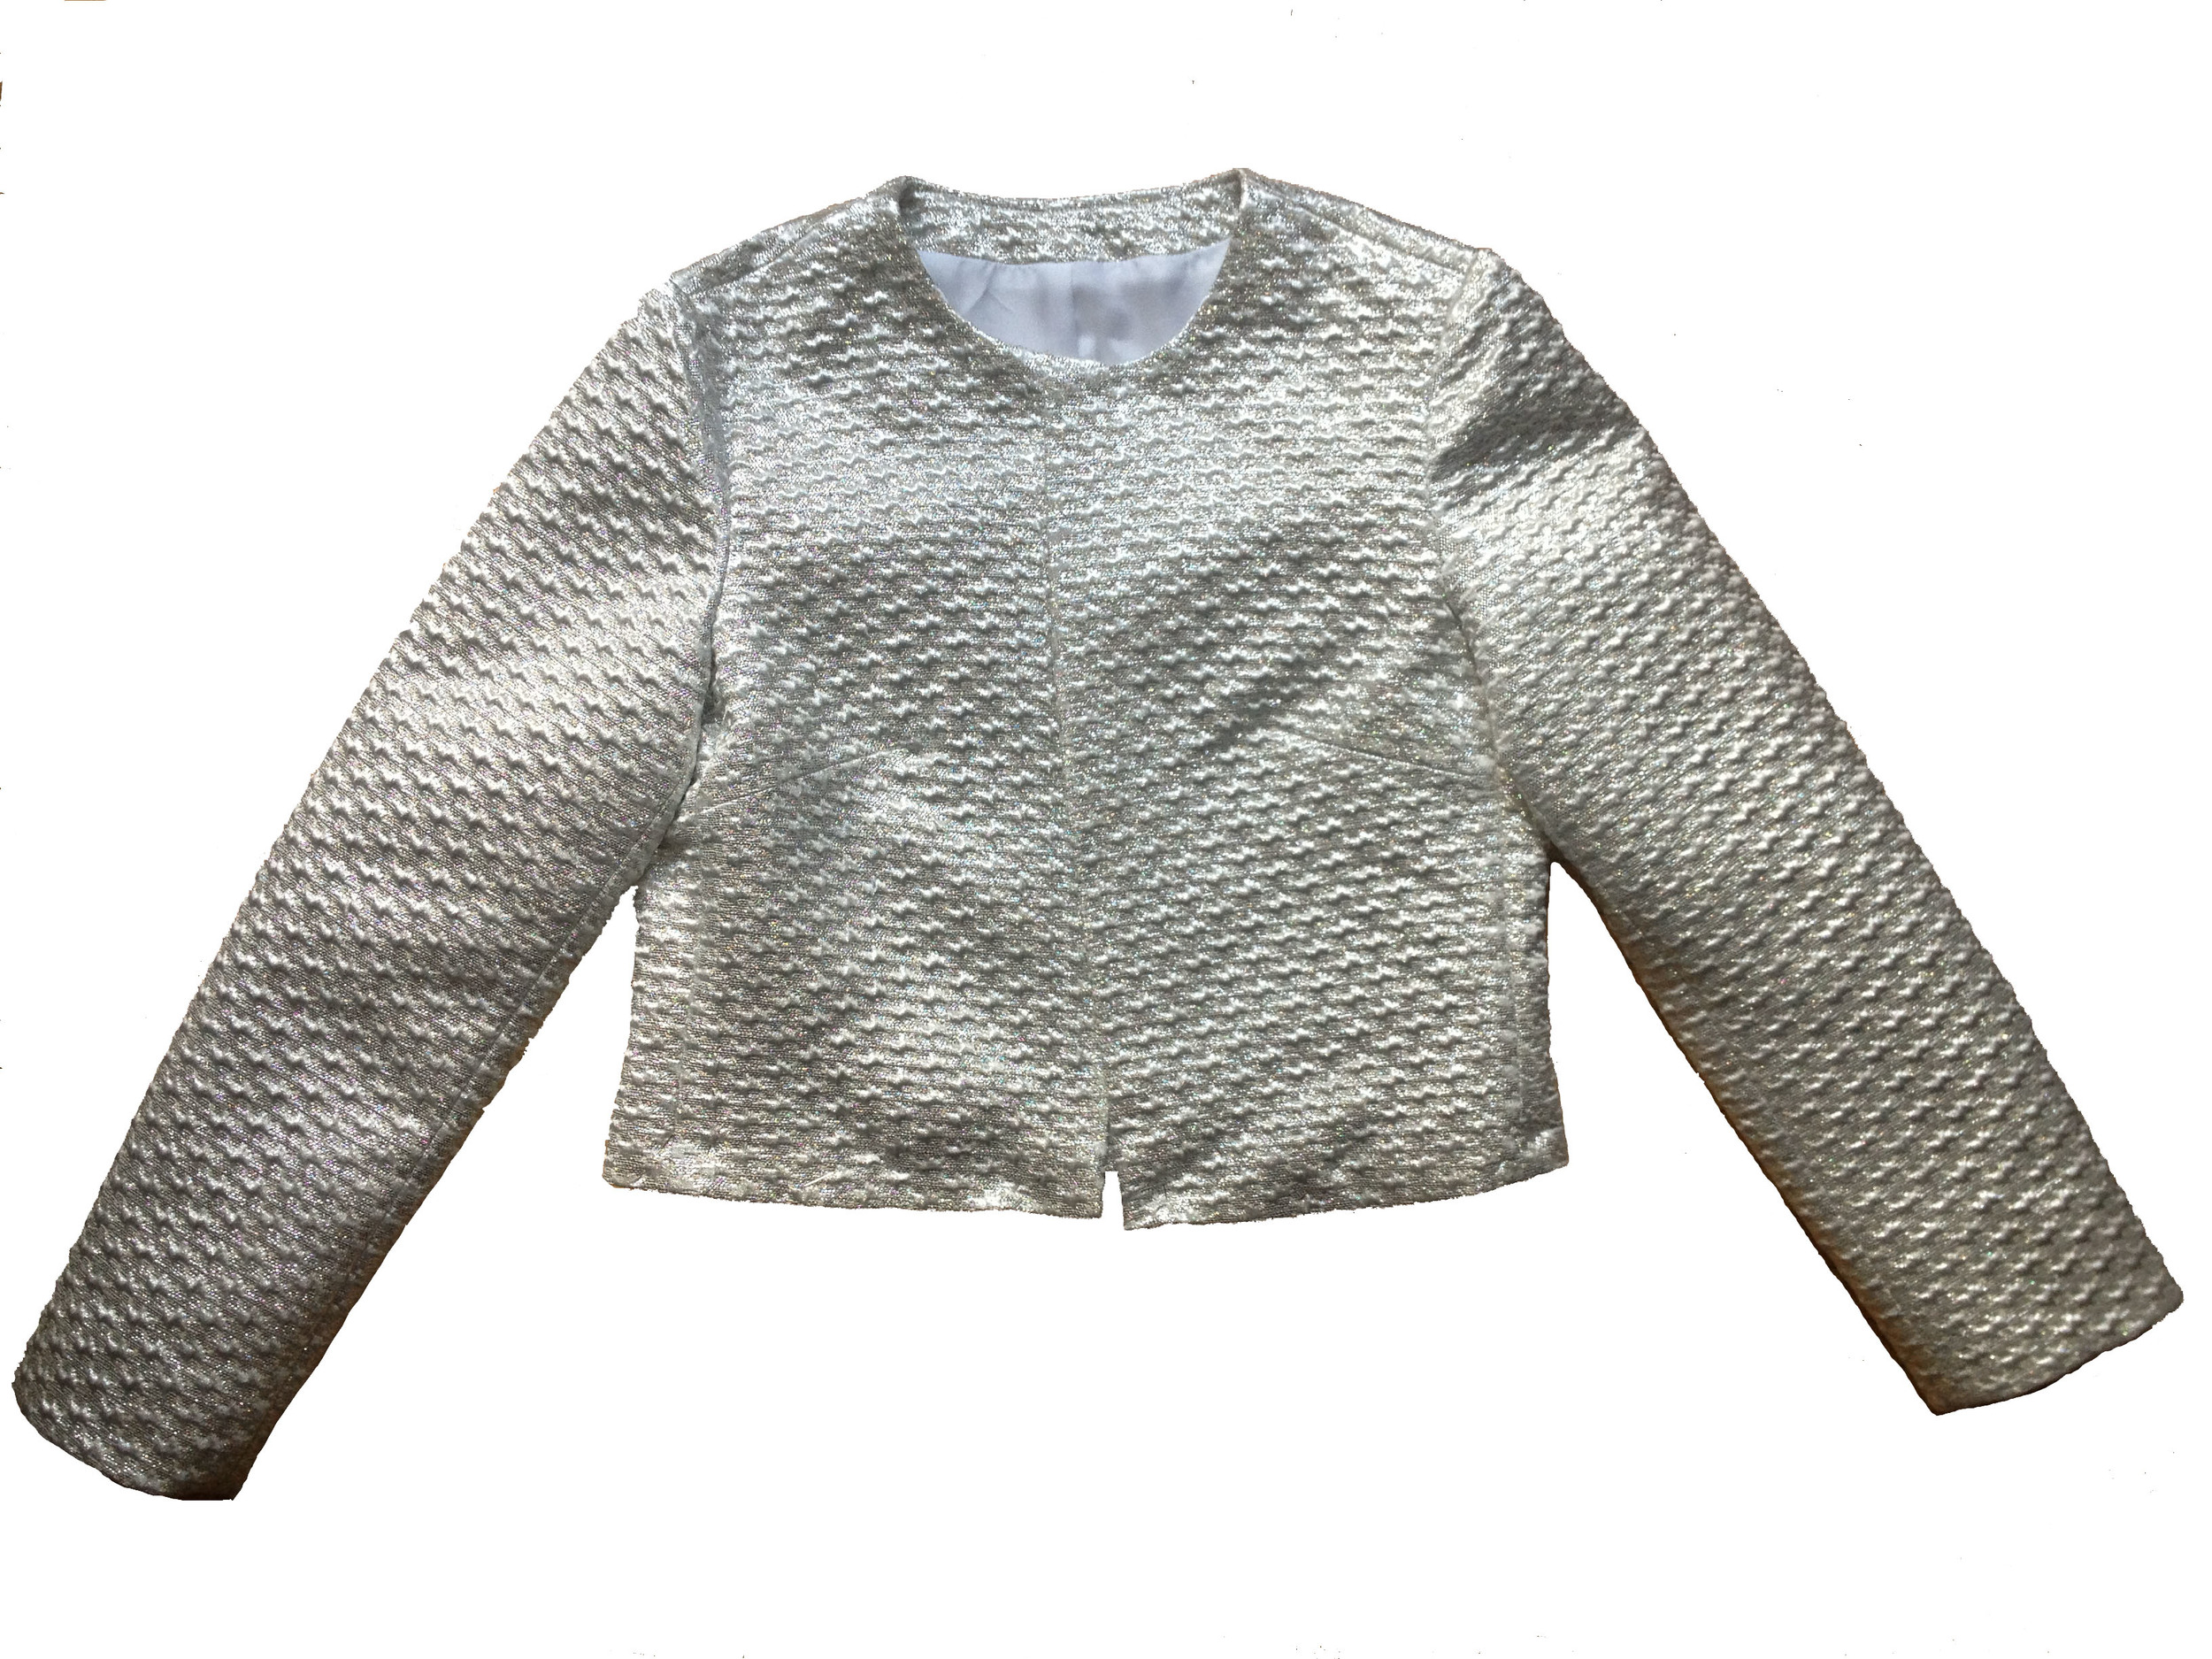 Silver Jacquard Jacket Closed.jpg